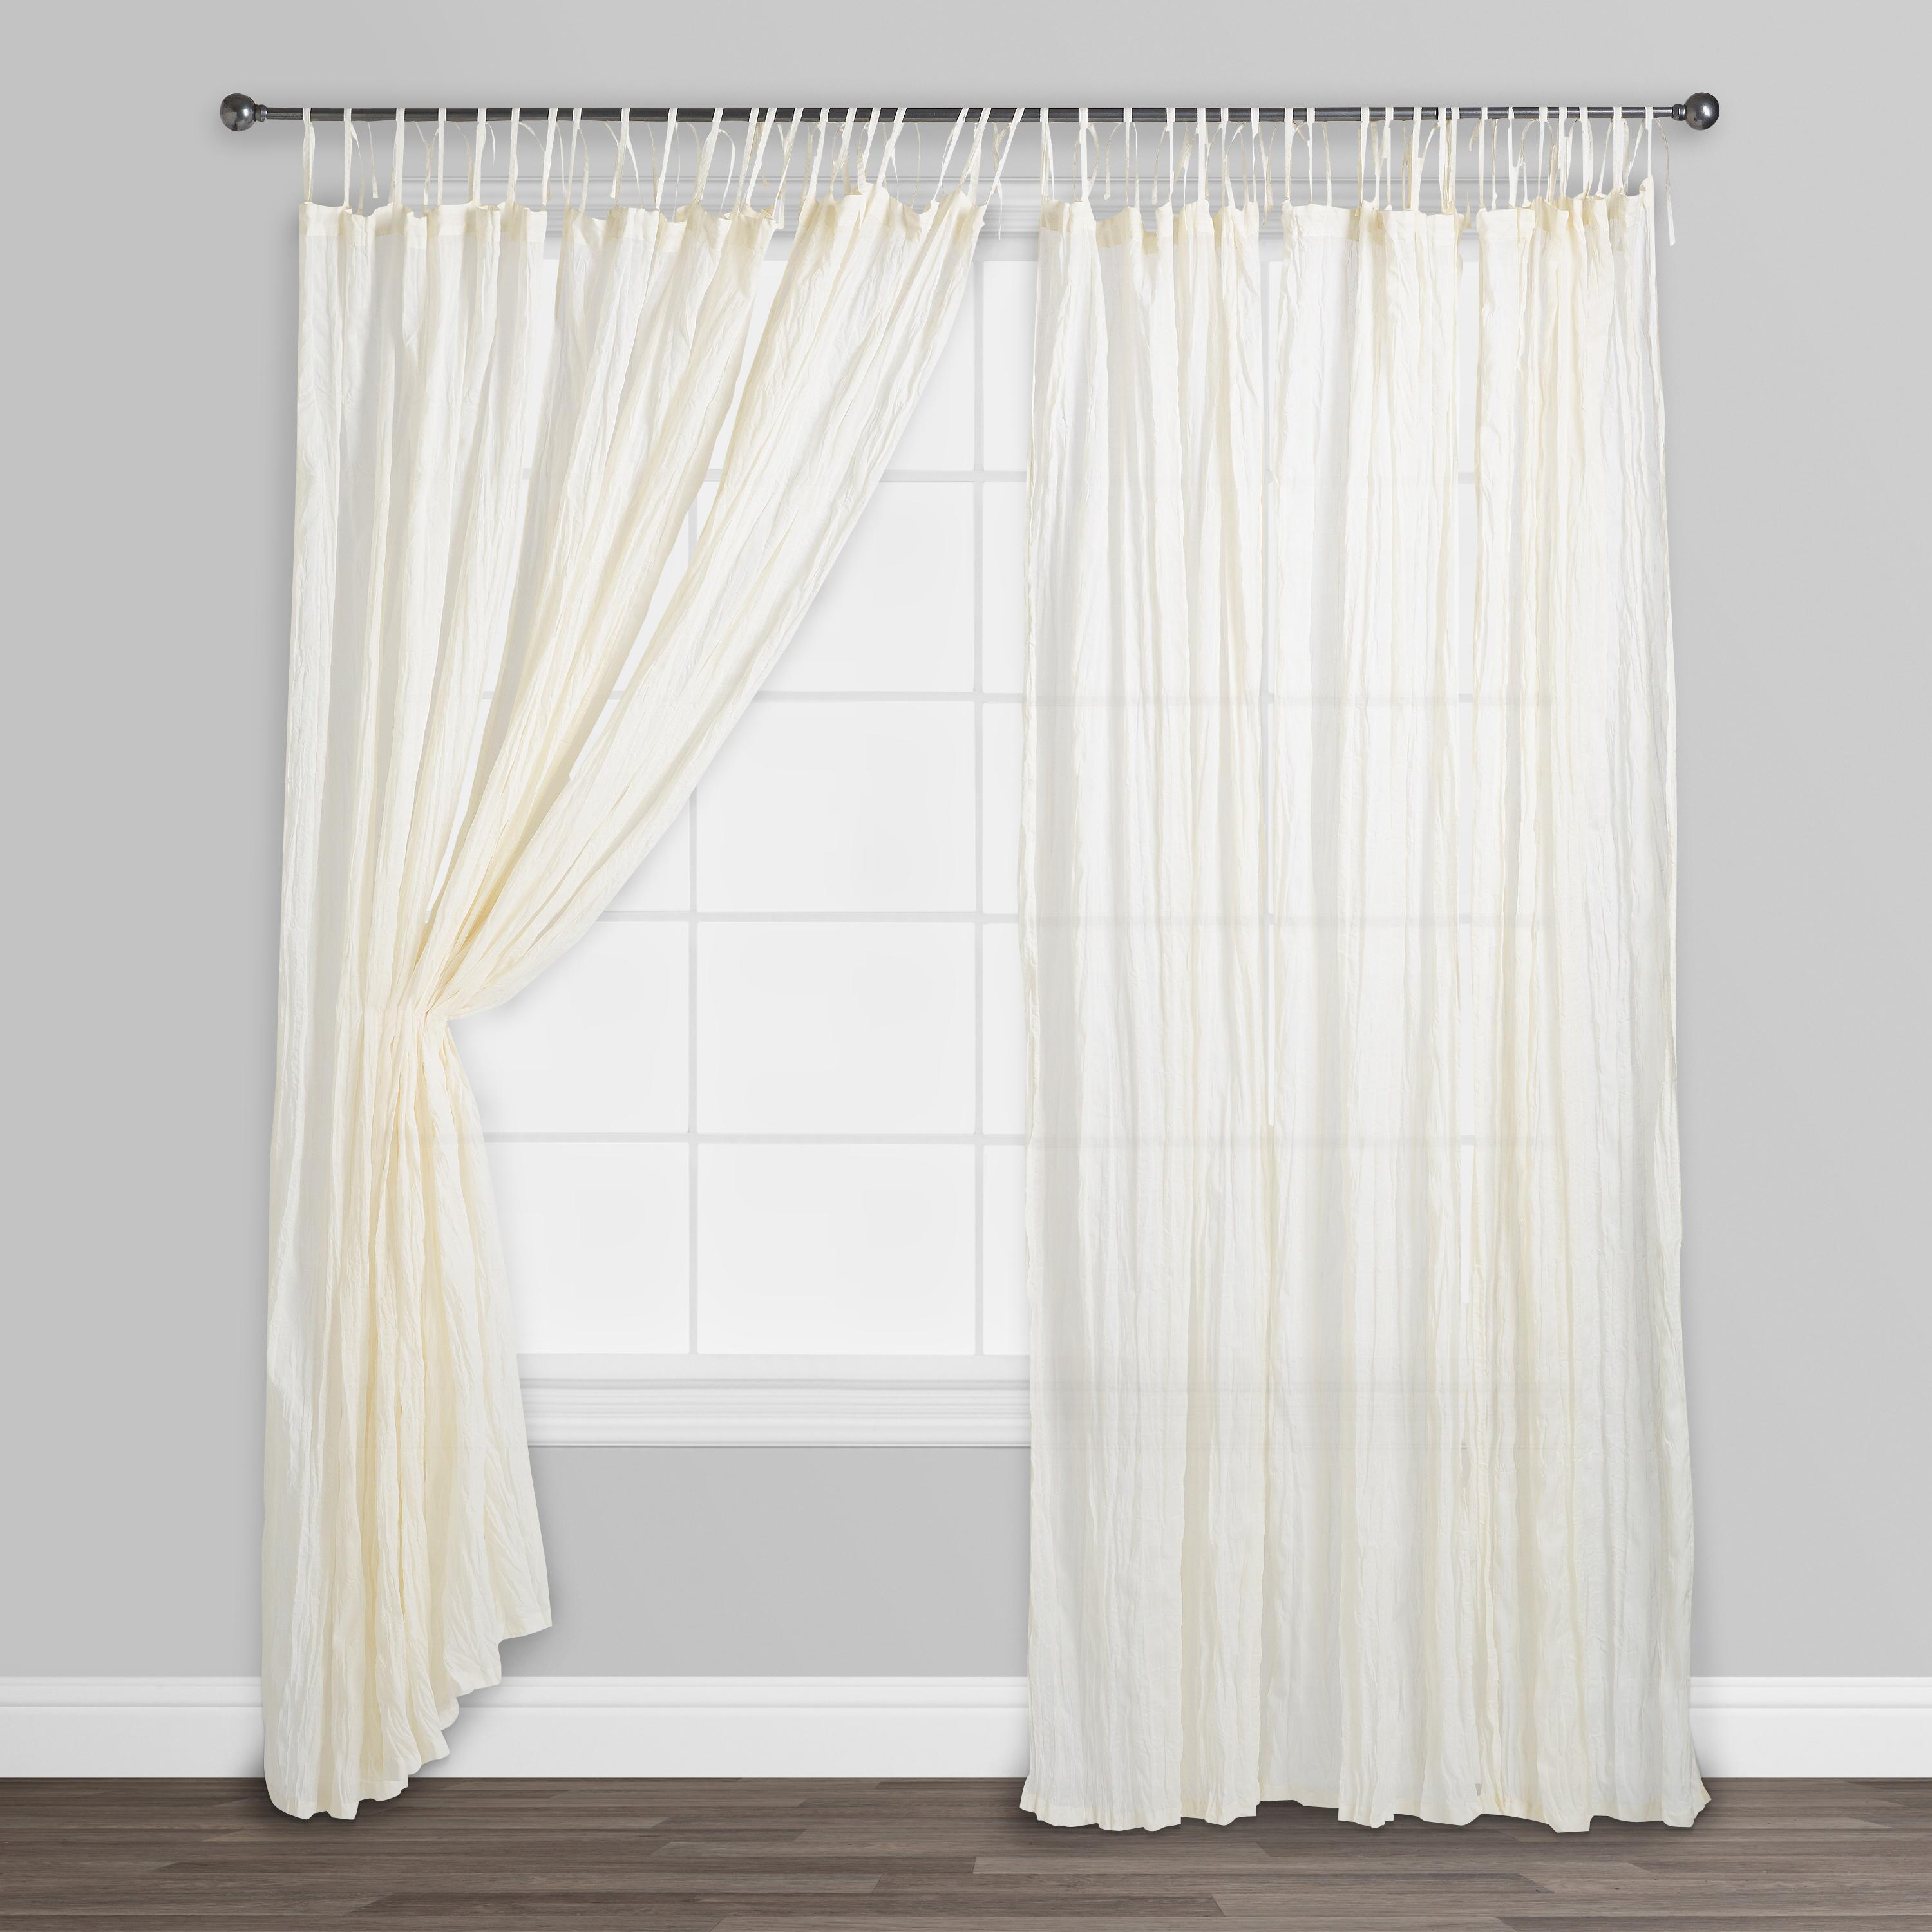 natural crinkle voile cotton curtains set of 2 white